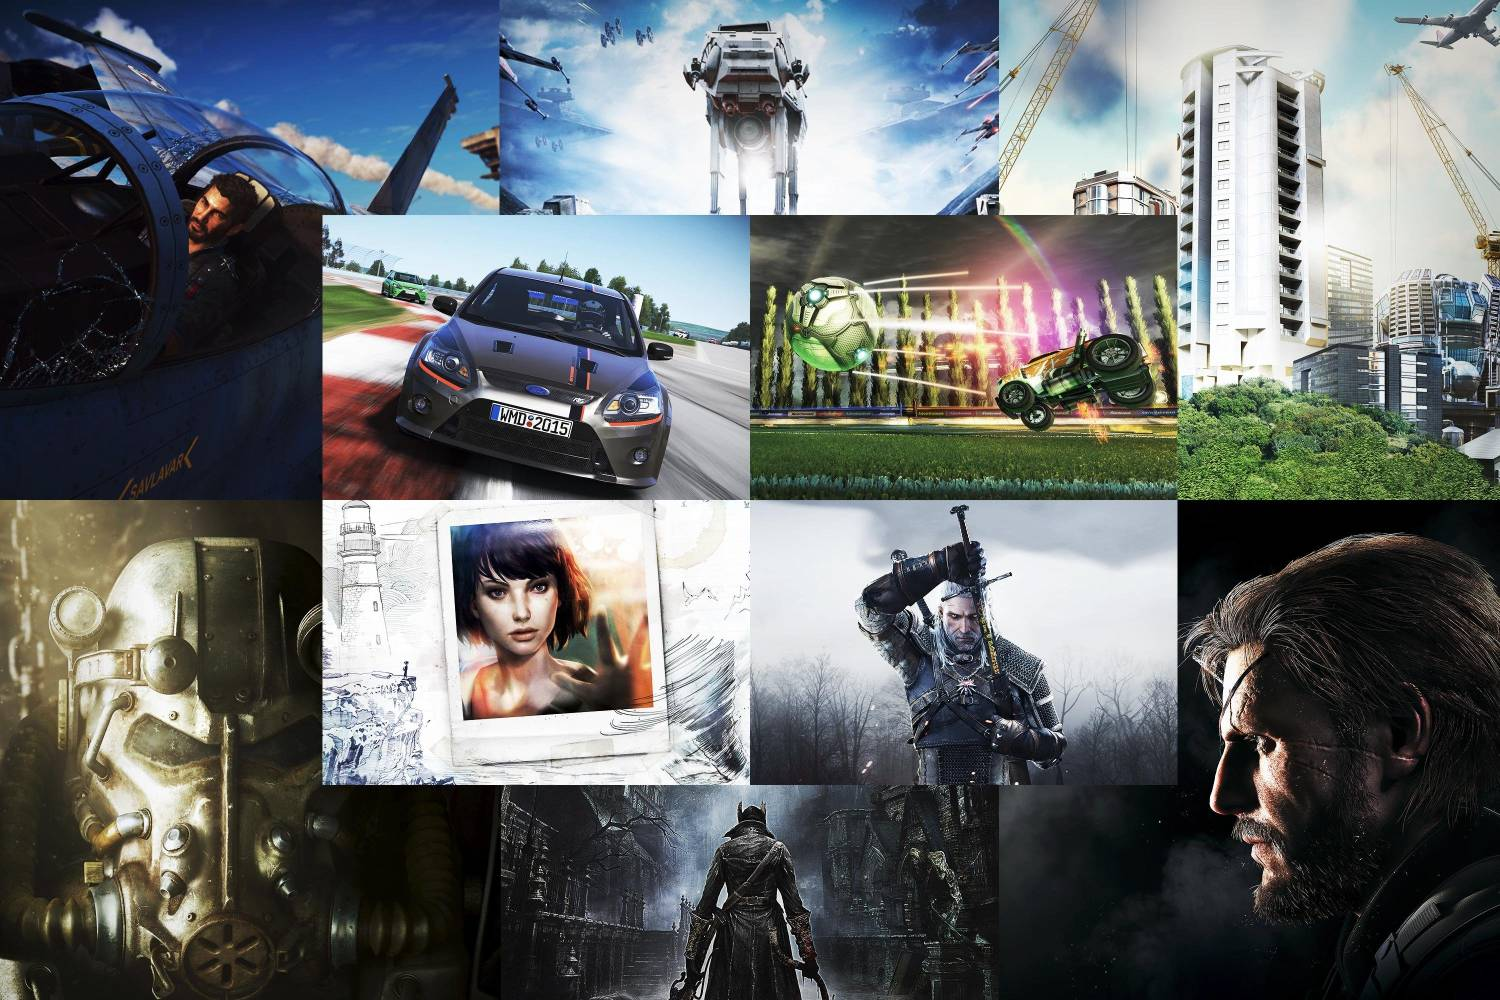 The best games of 2015: Your top 10